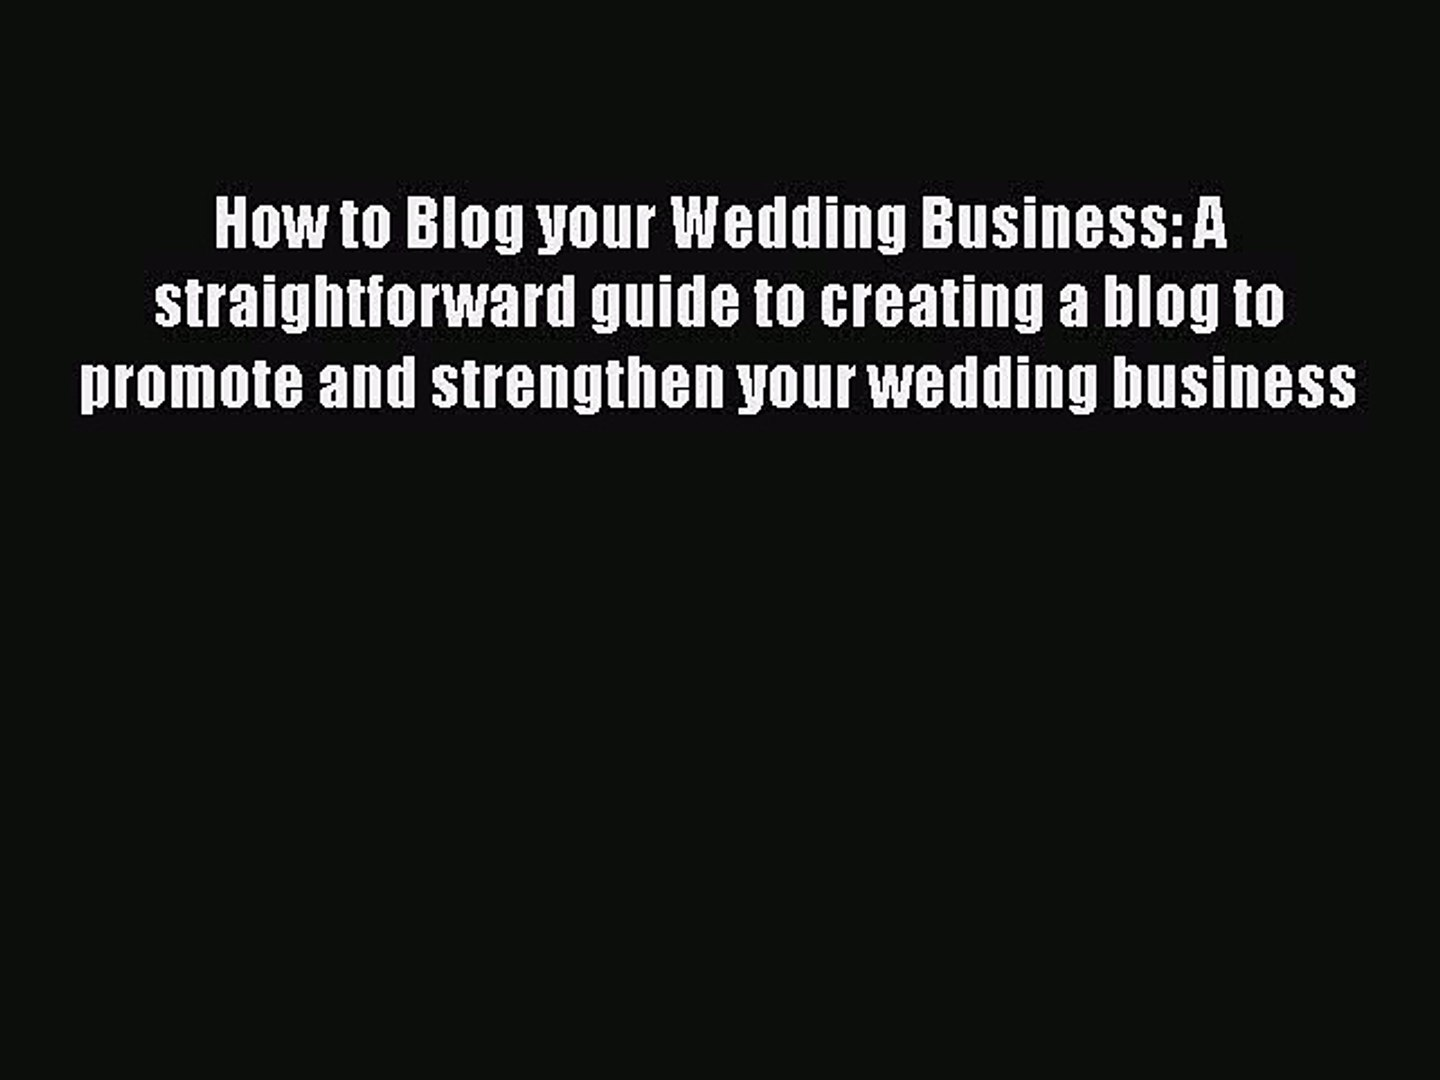 [Read book] How to Blog your Wedding Business: A straightforward guide to creating a blog to